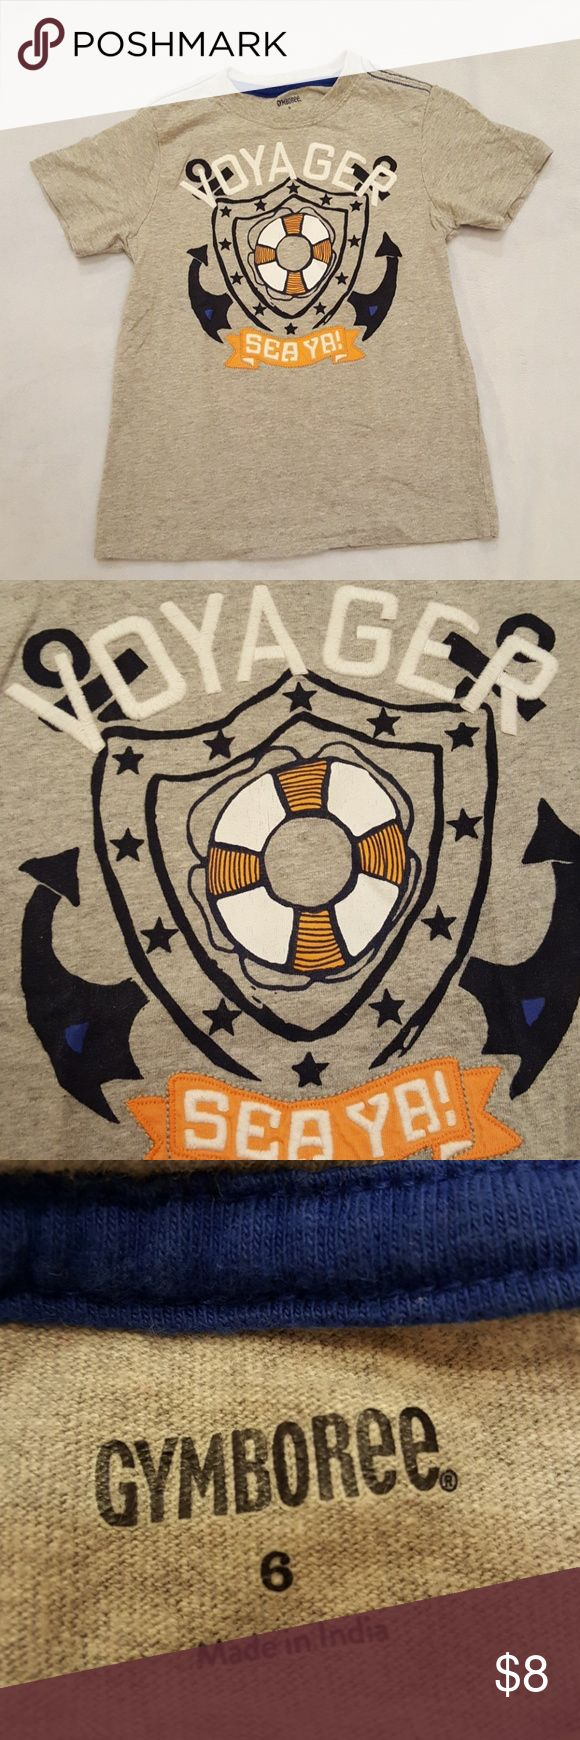 Gymboree boys shirt Good condition Gymboree boys light gray nautical shirt. Letters are embroidered. Gymboree Shirts & Tops Tees - Short Sleeve